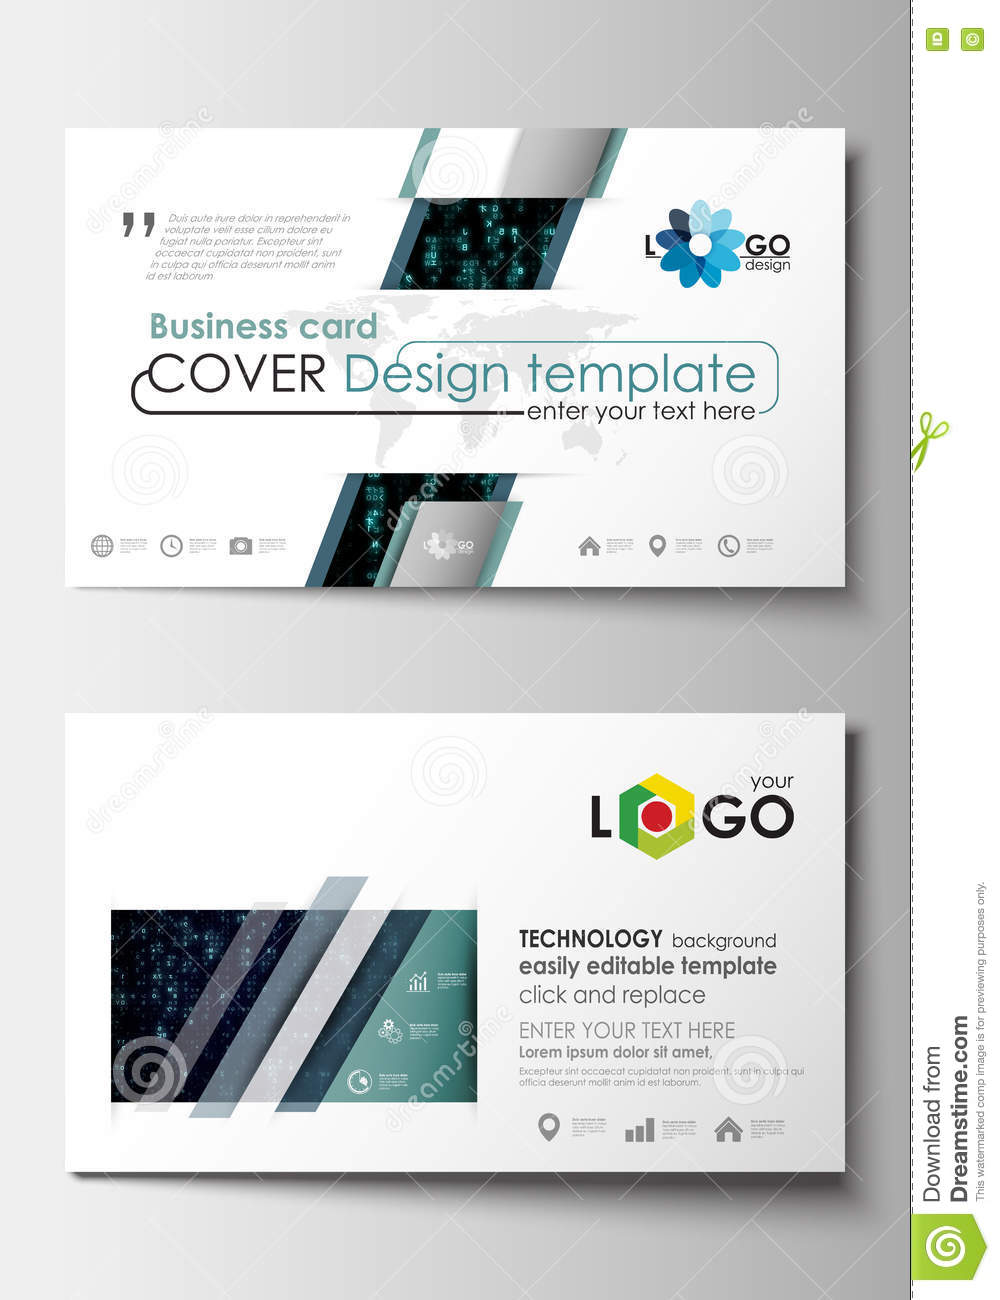 Business Card Templates. Cover Design Template, Easy Editable Blank ...